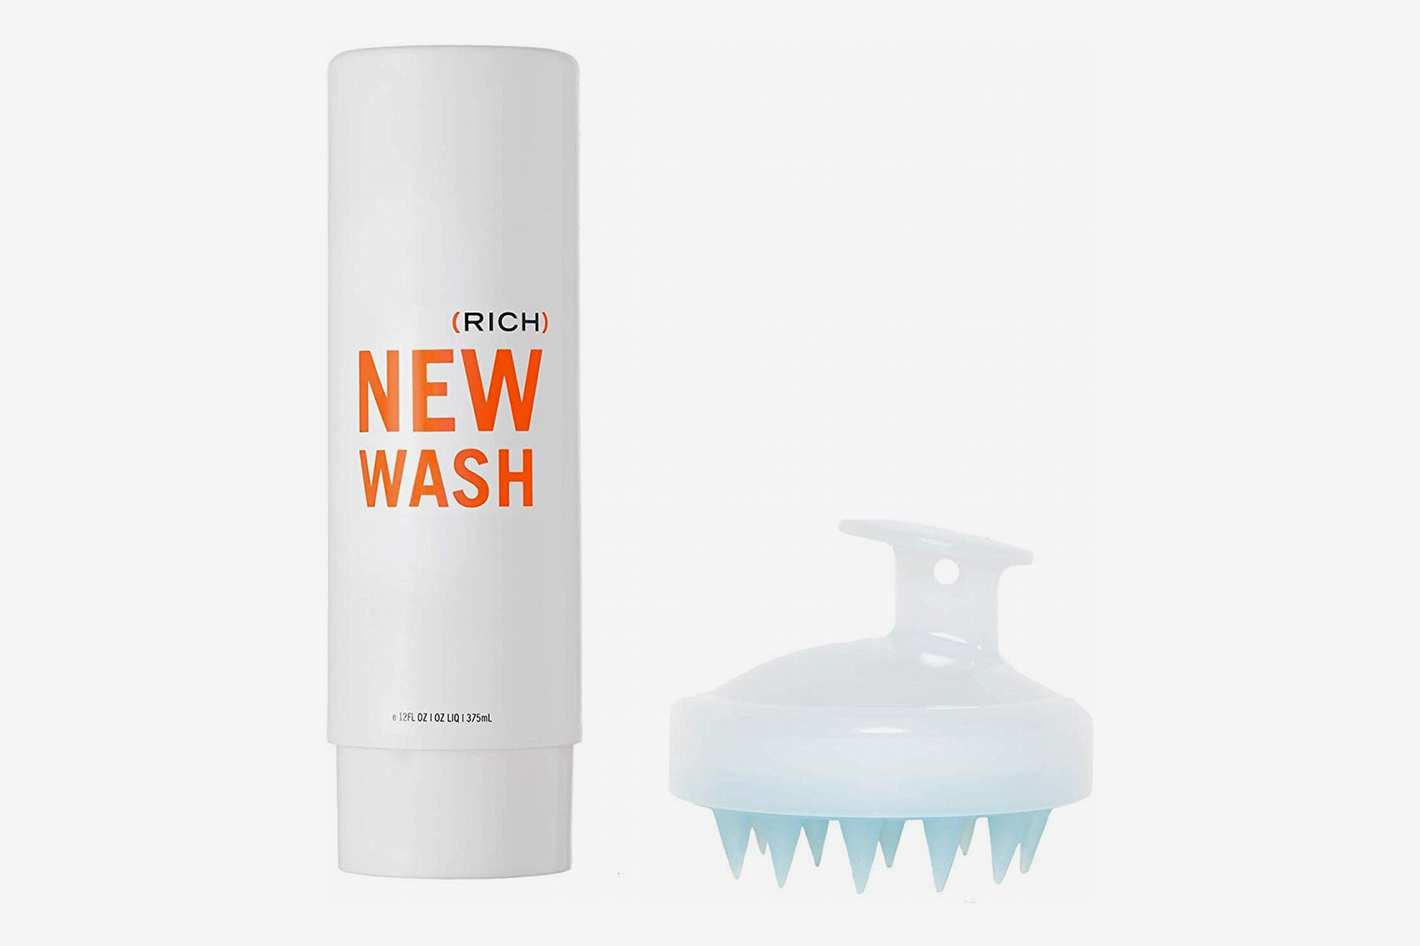 Hairstory New Wash (Rich) Hair Cleanser 8 oz + In-Shower Brush